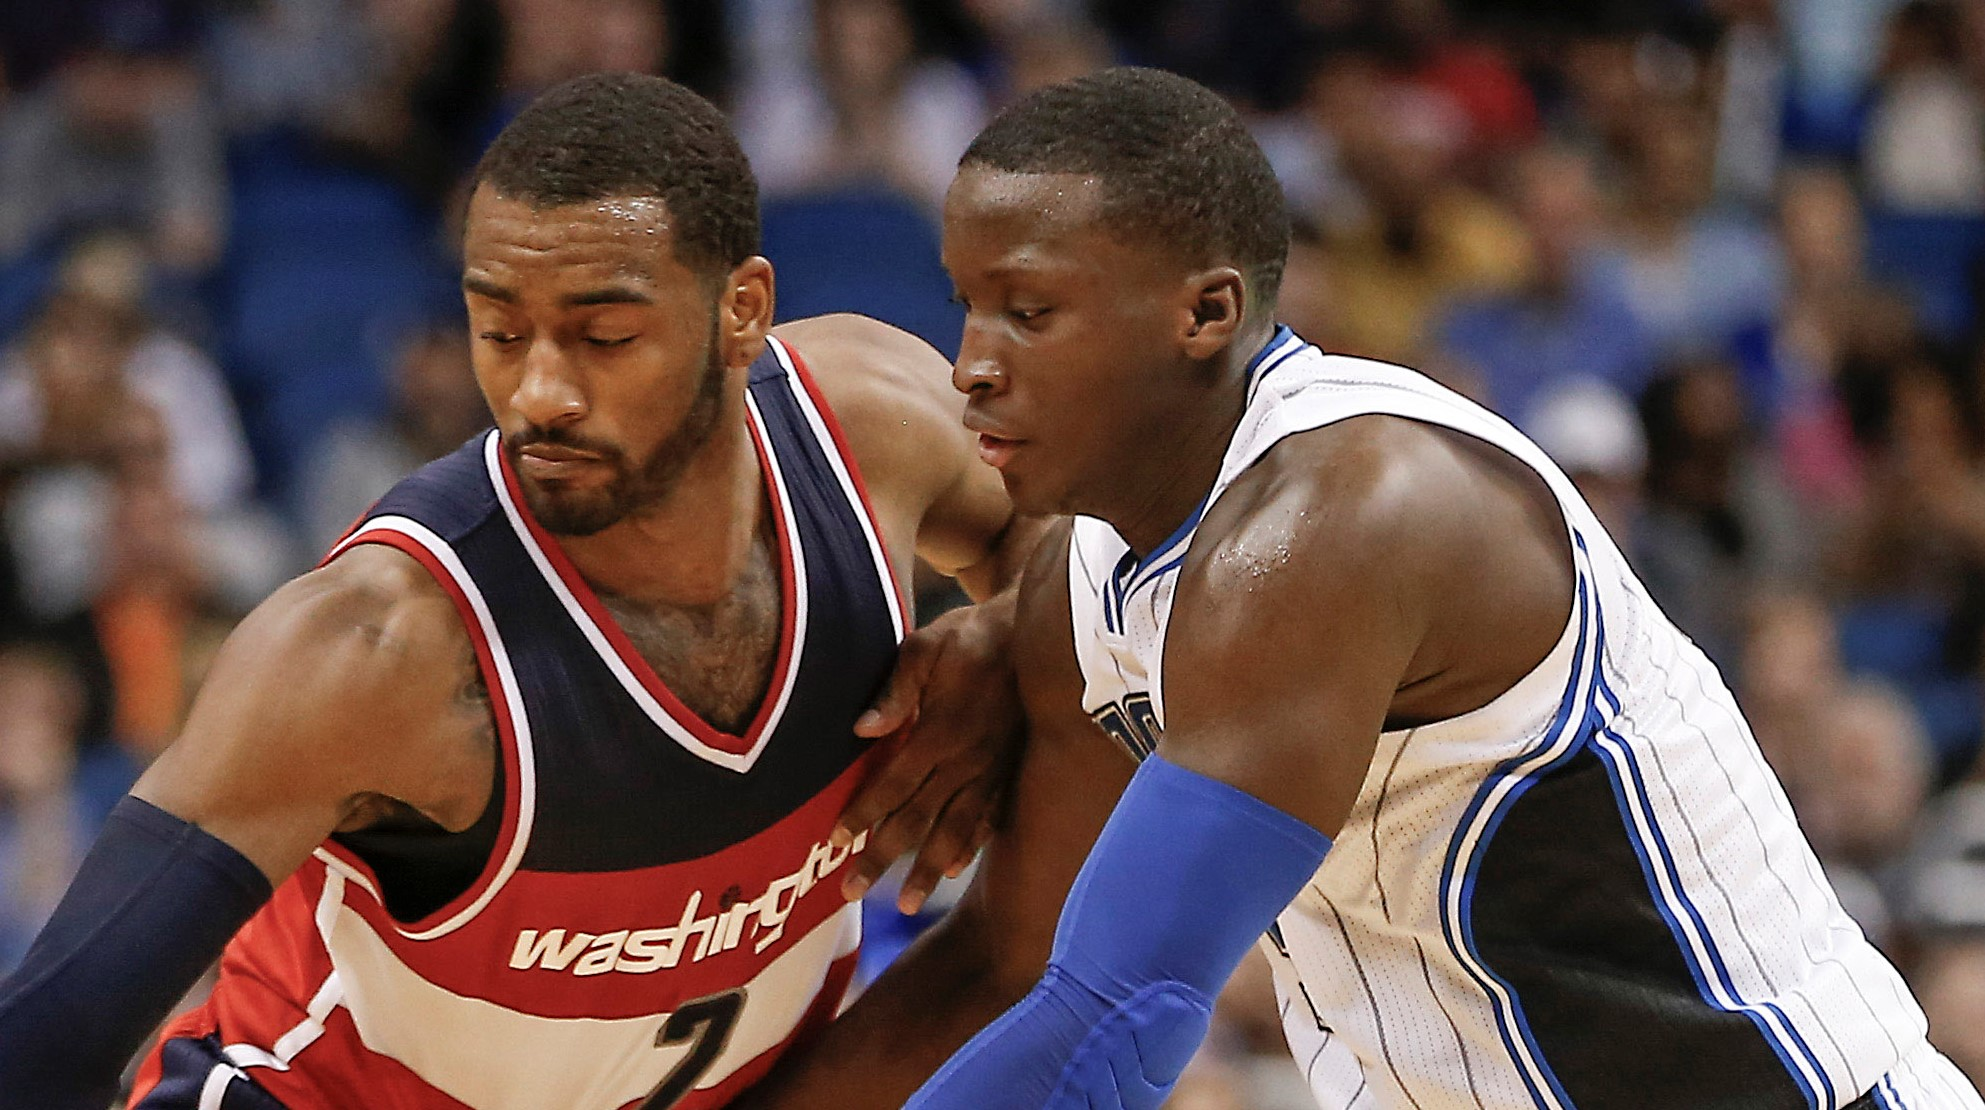 Jan 9, 2016; Orlando, FL, USA; Orlando Magic guard Victor Oladipo (5) and Washington Wizards guard John Wall (2) compete for a loose ball during the second half at Amway Center. The Washington Wizards won 105-99. Mandatory Credit: Reinhold Matay-USA TODAY Sports